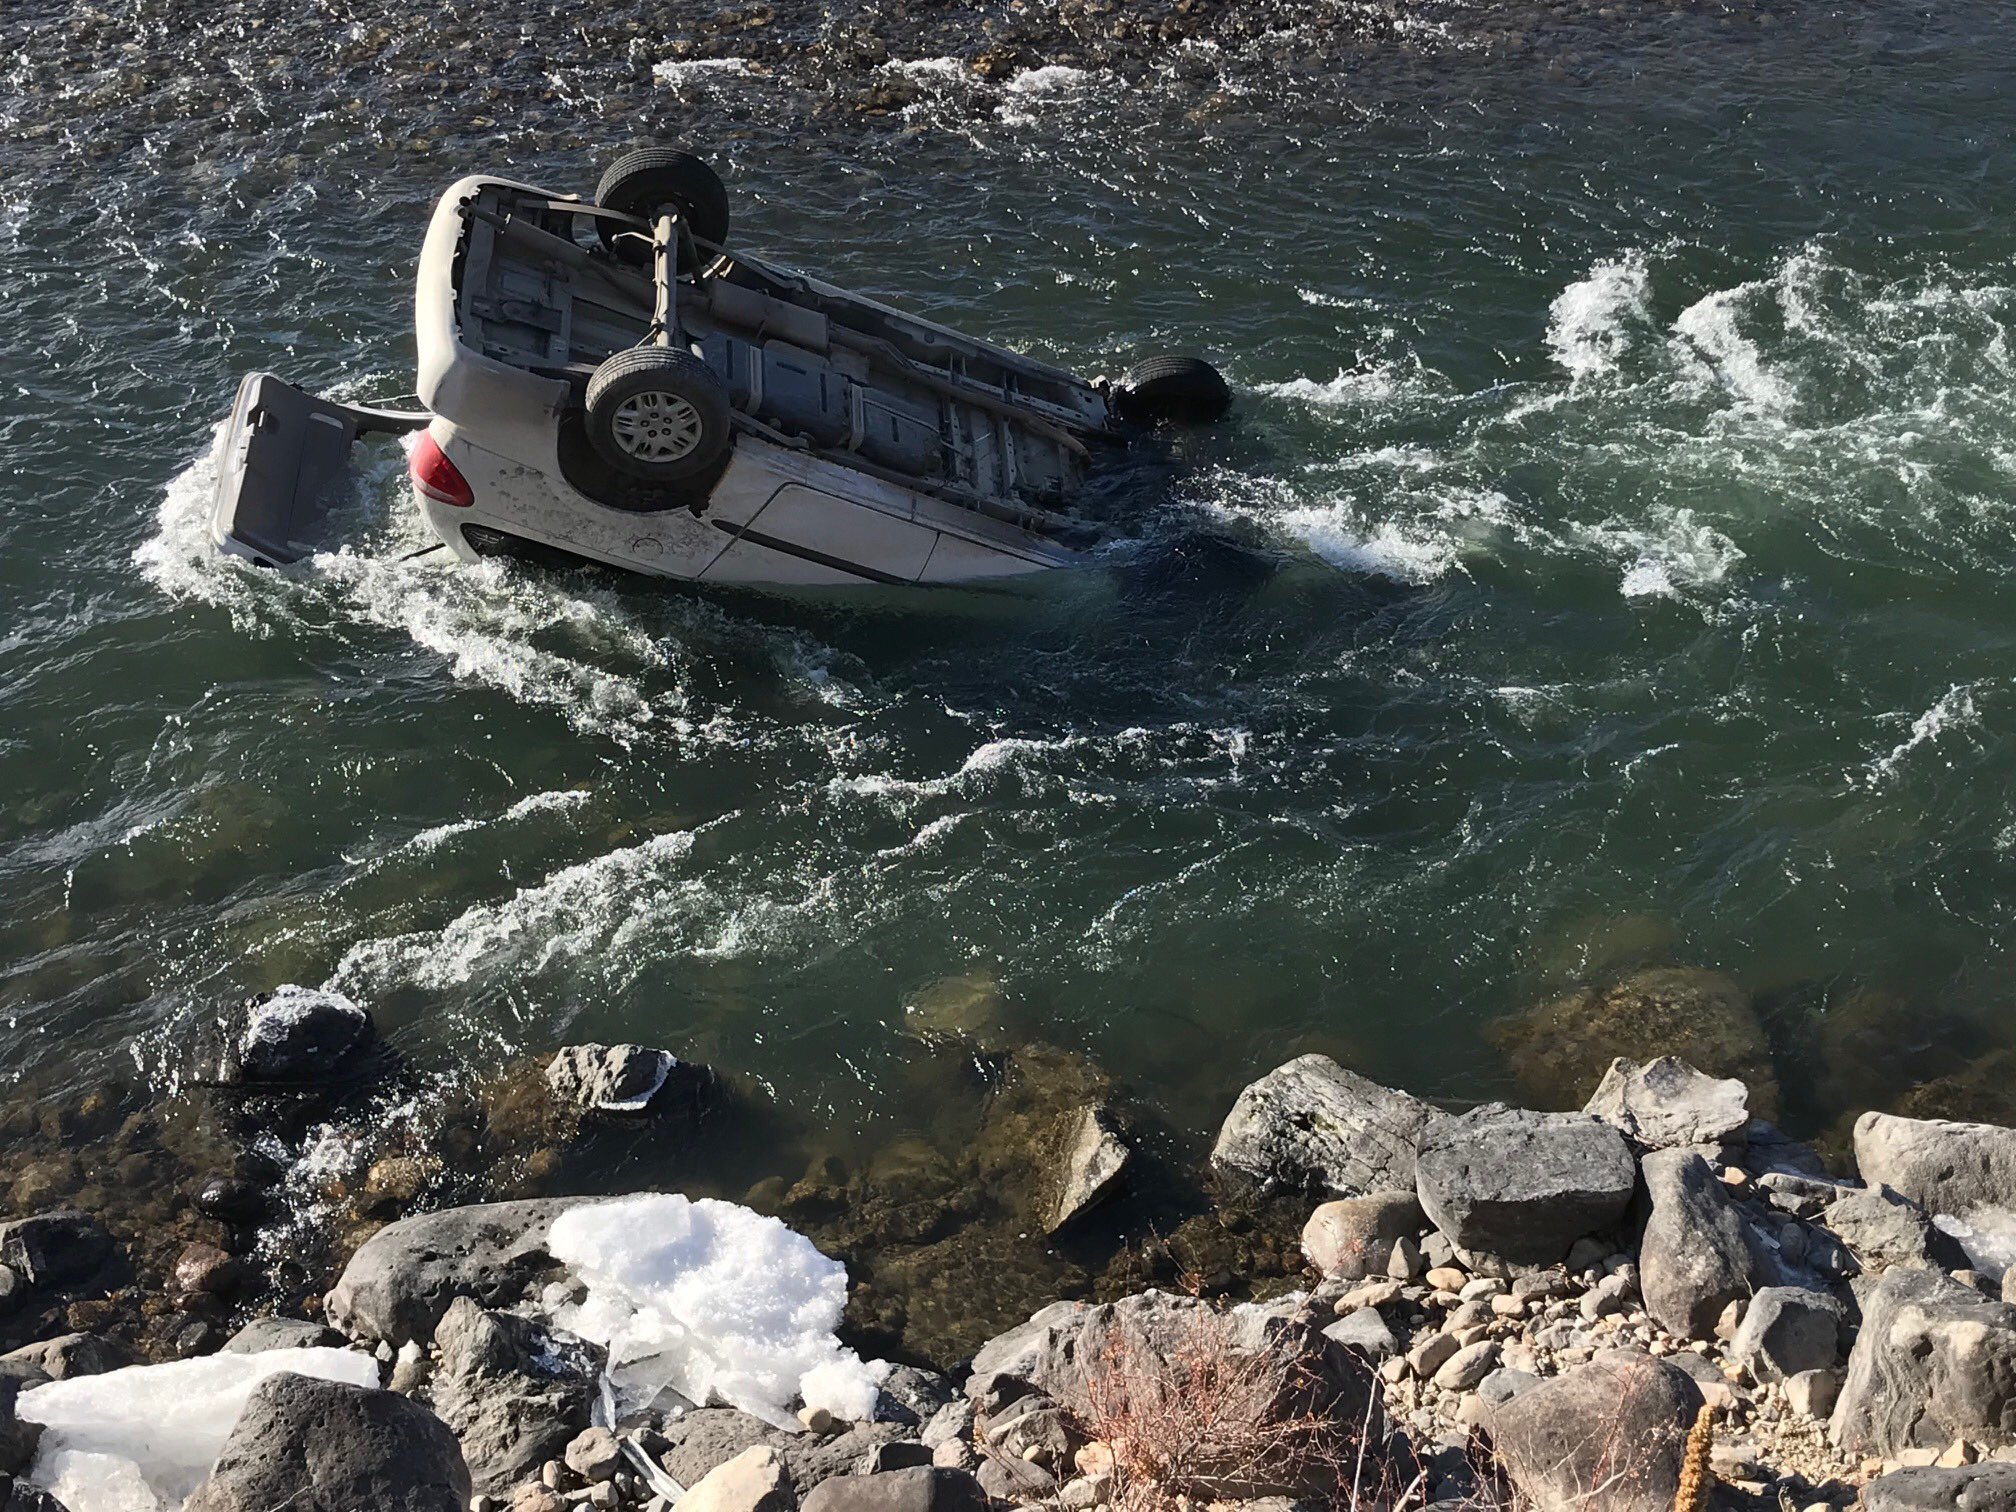 Montana trooper rescues driver from car submerged in icy river